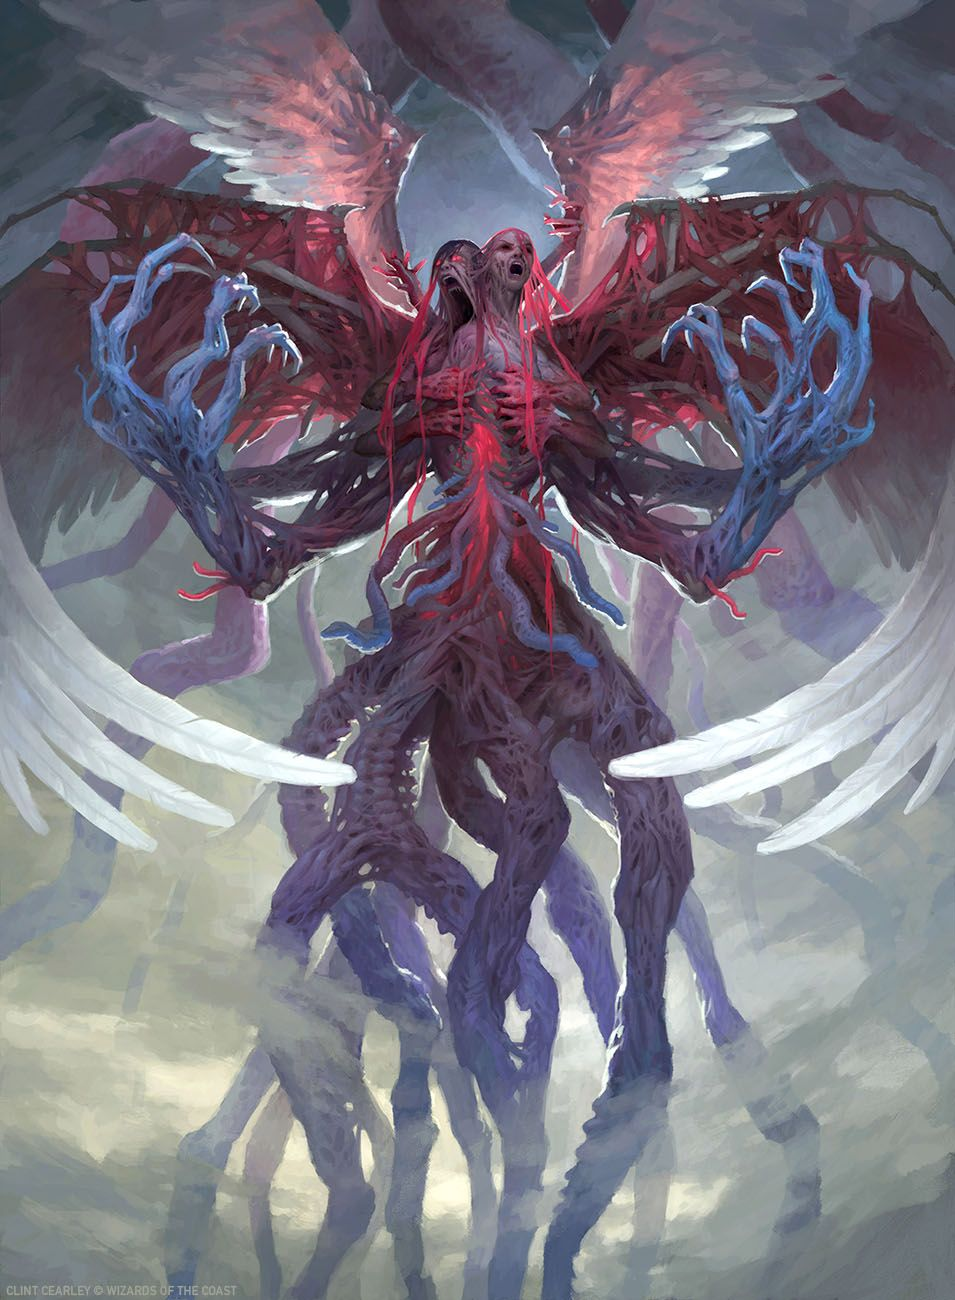 Brisela The Voice Of Nightmares Mtg By Clintcearley Mutant Hybrid Angel Demon Devil Wings Monster Beast Creature Animal Create Your Own Roleplaying